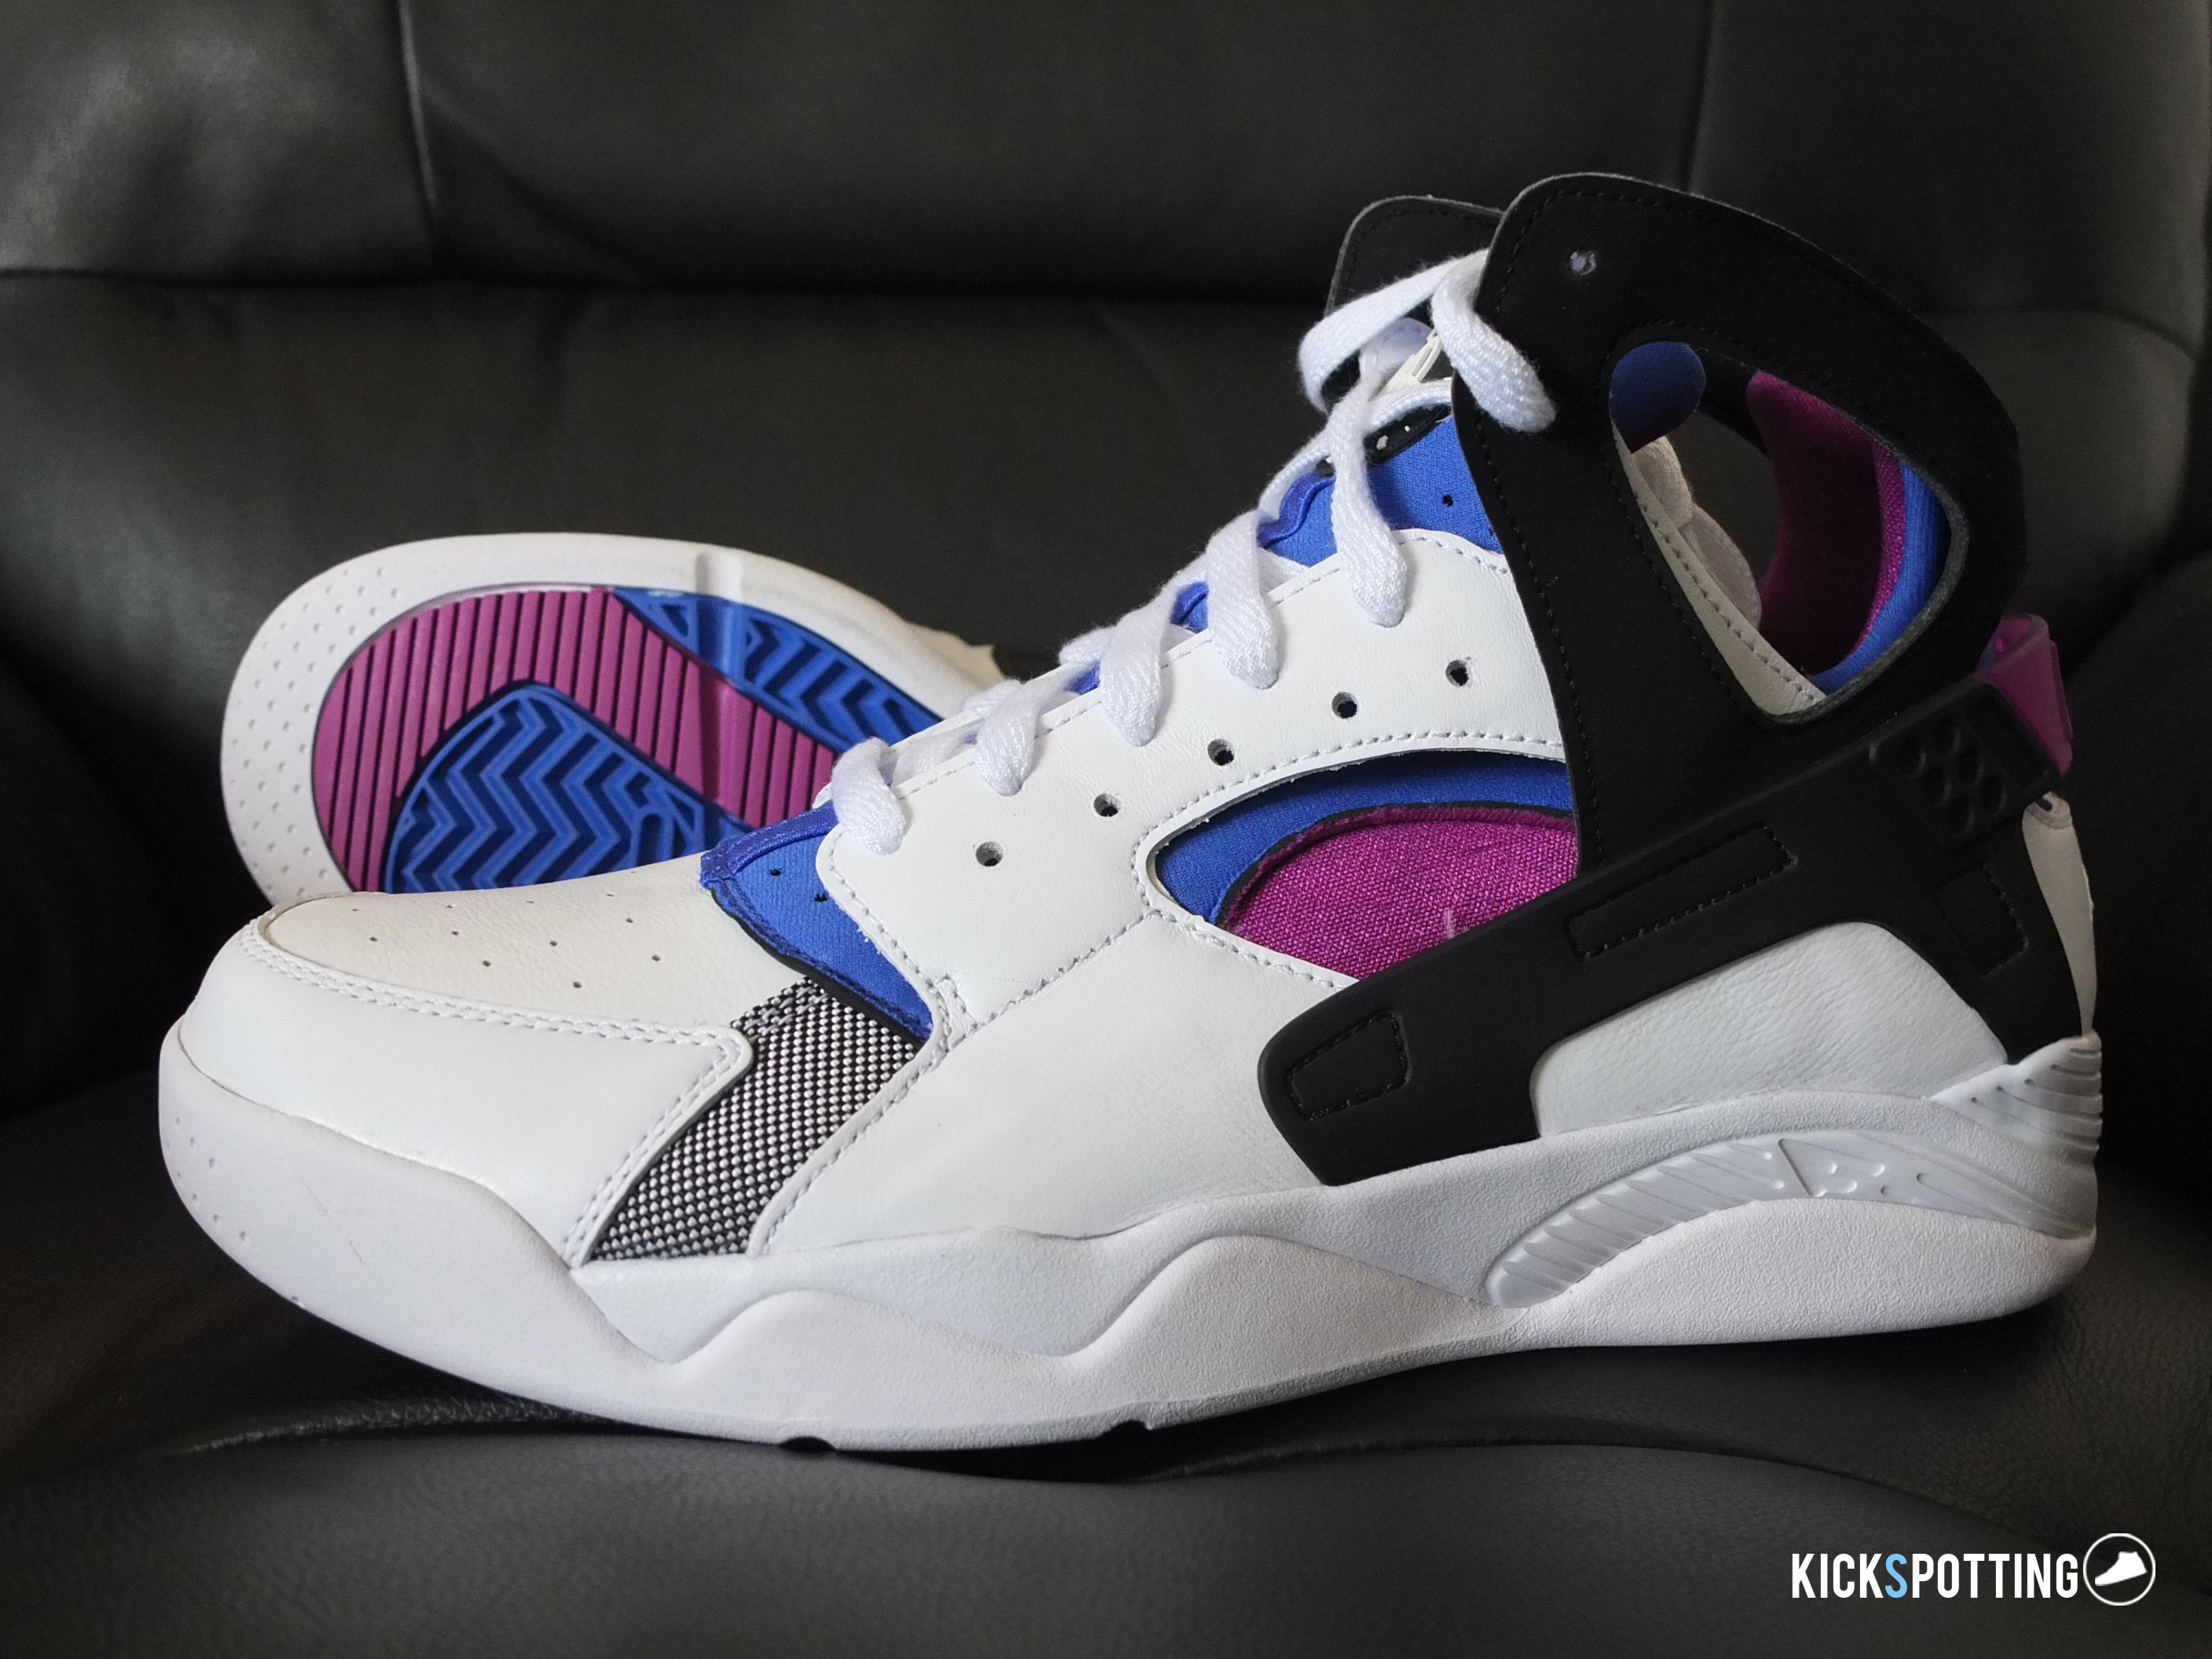 Performance Review: Nike Flight Huarache OG